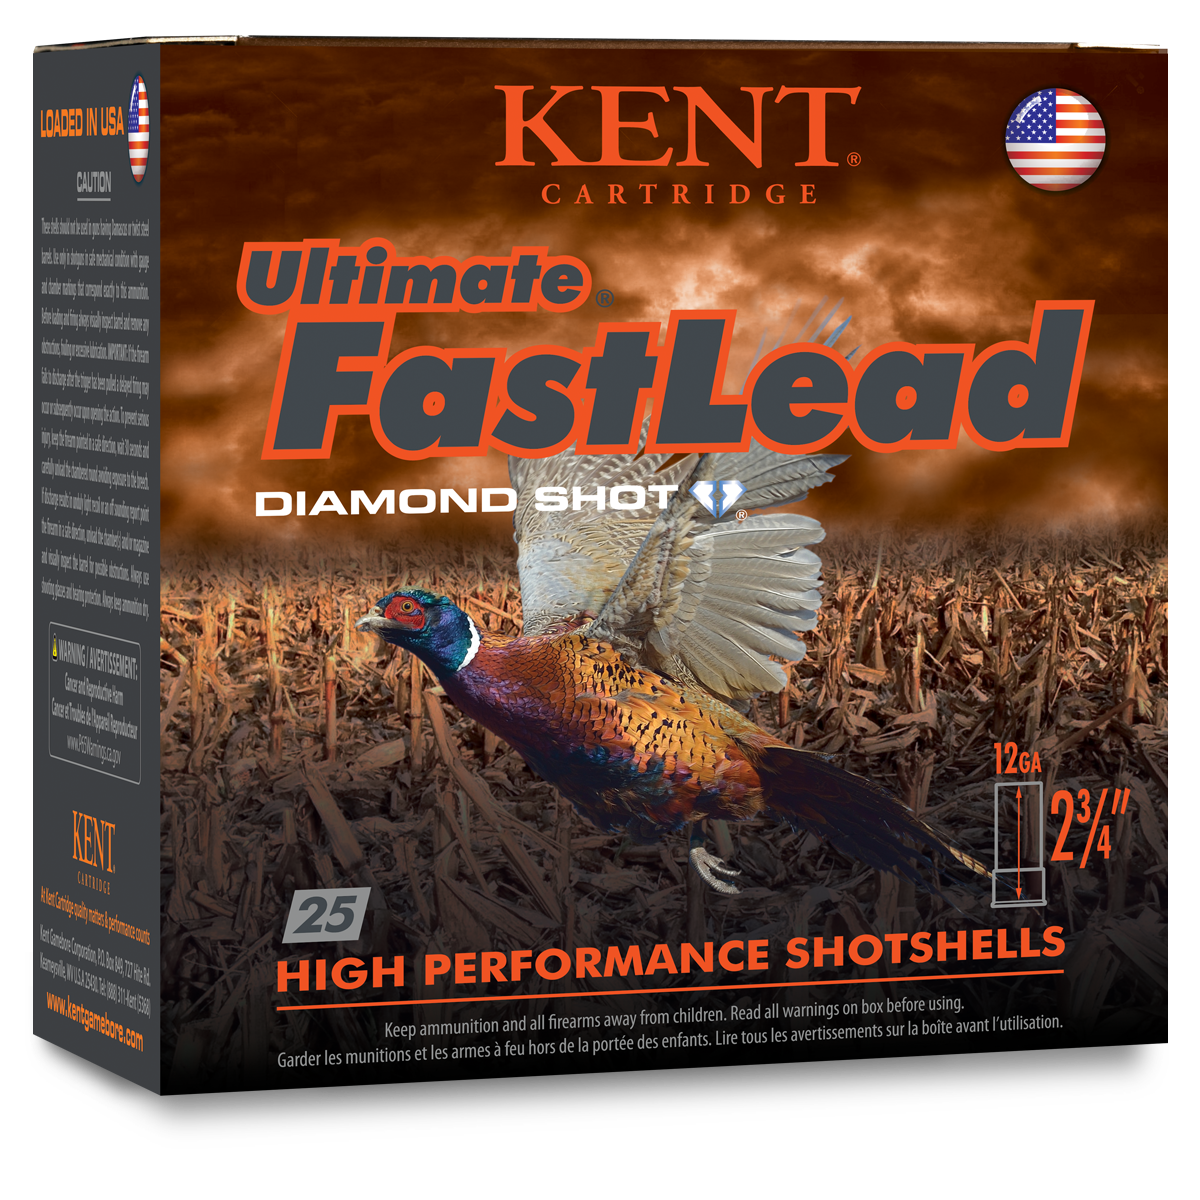 Kent Cartridge Upland Fasteel Game Load 12 Gauge 2-3/4